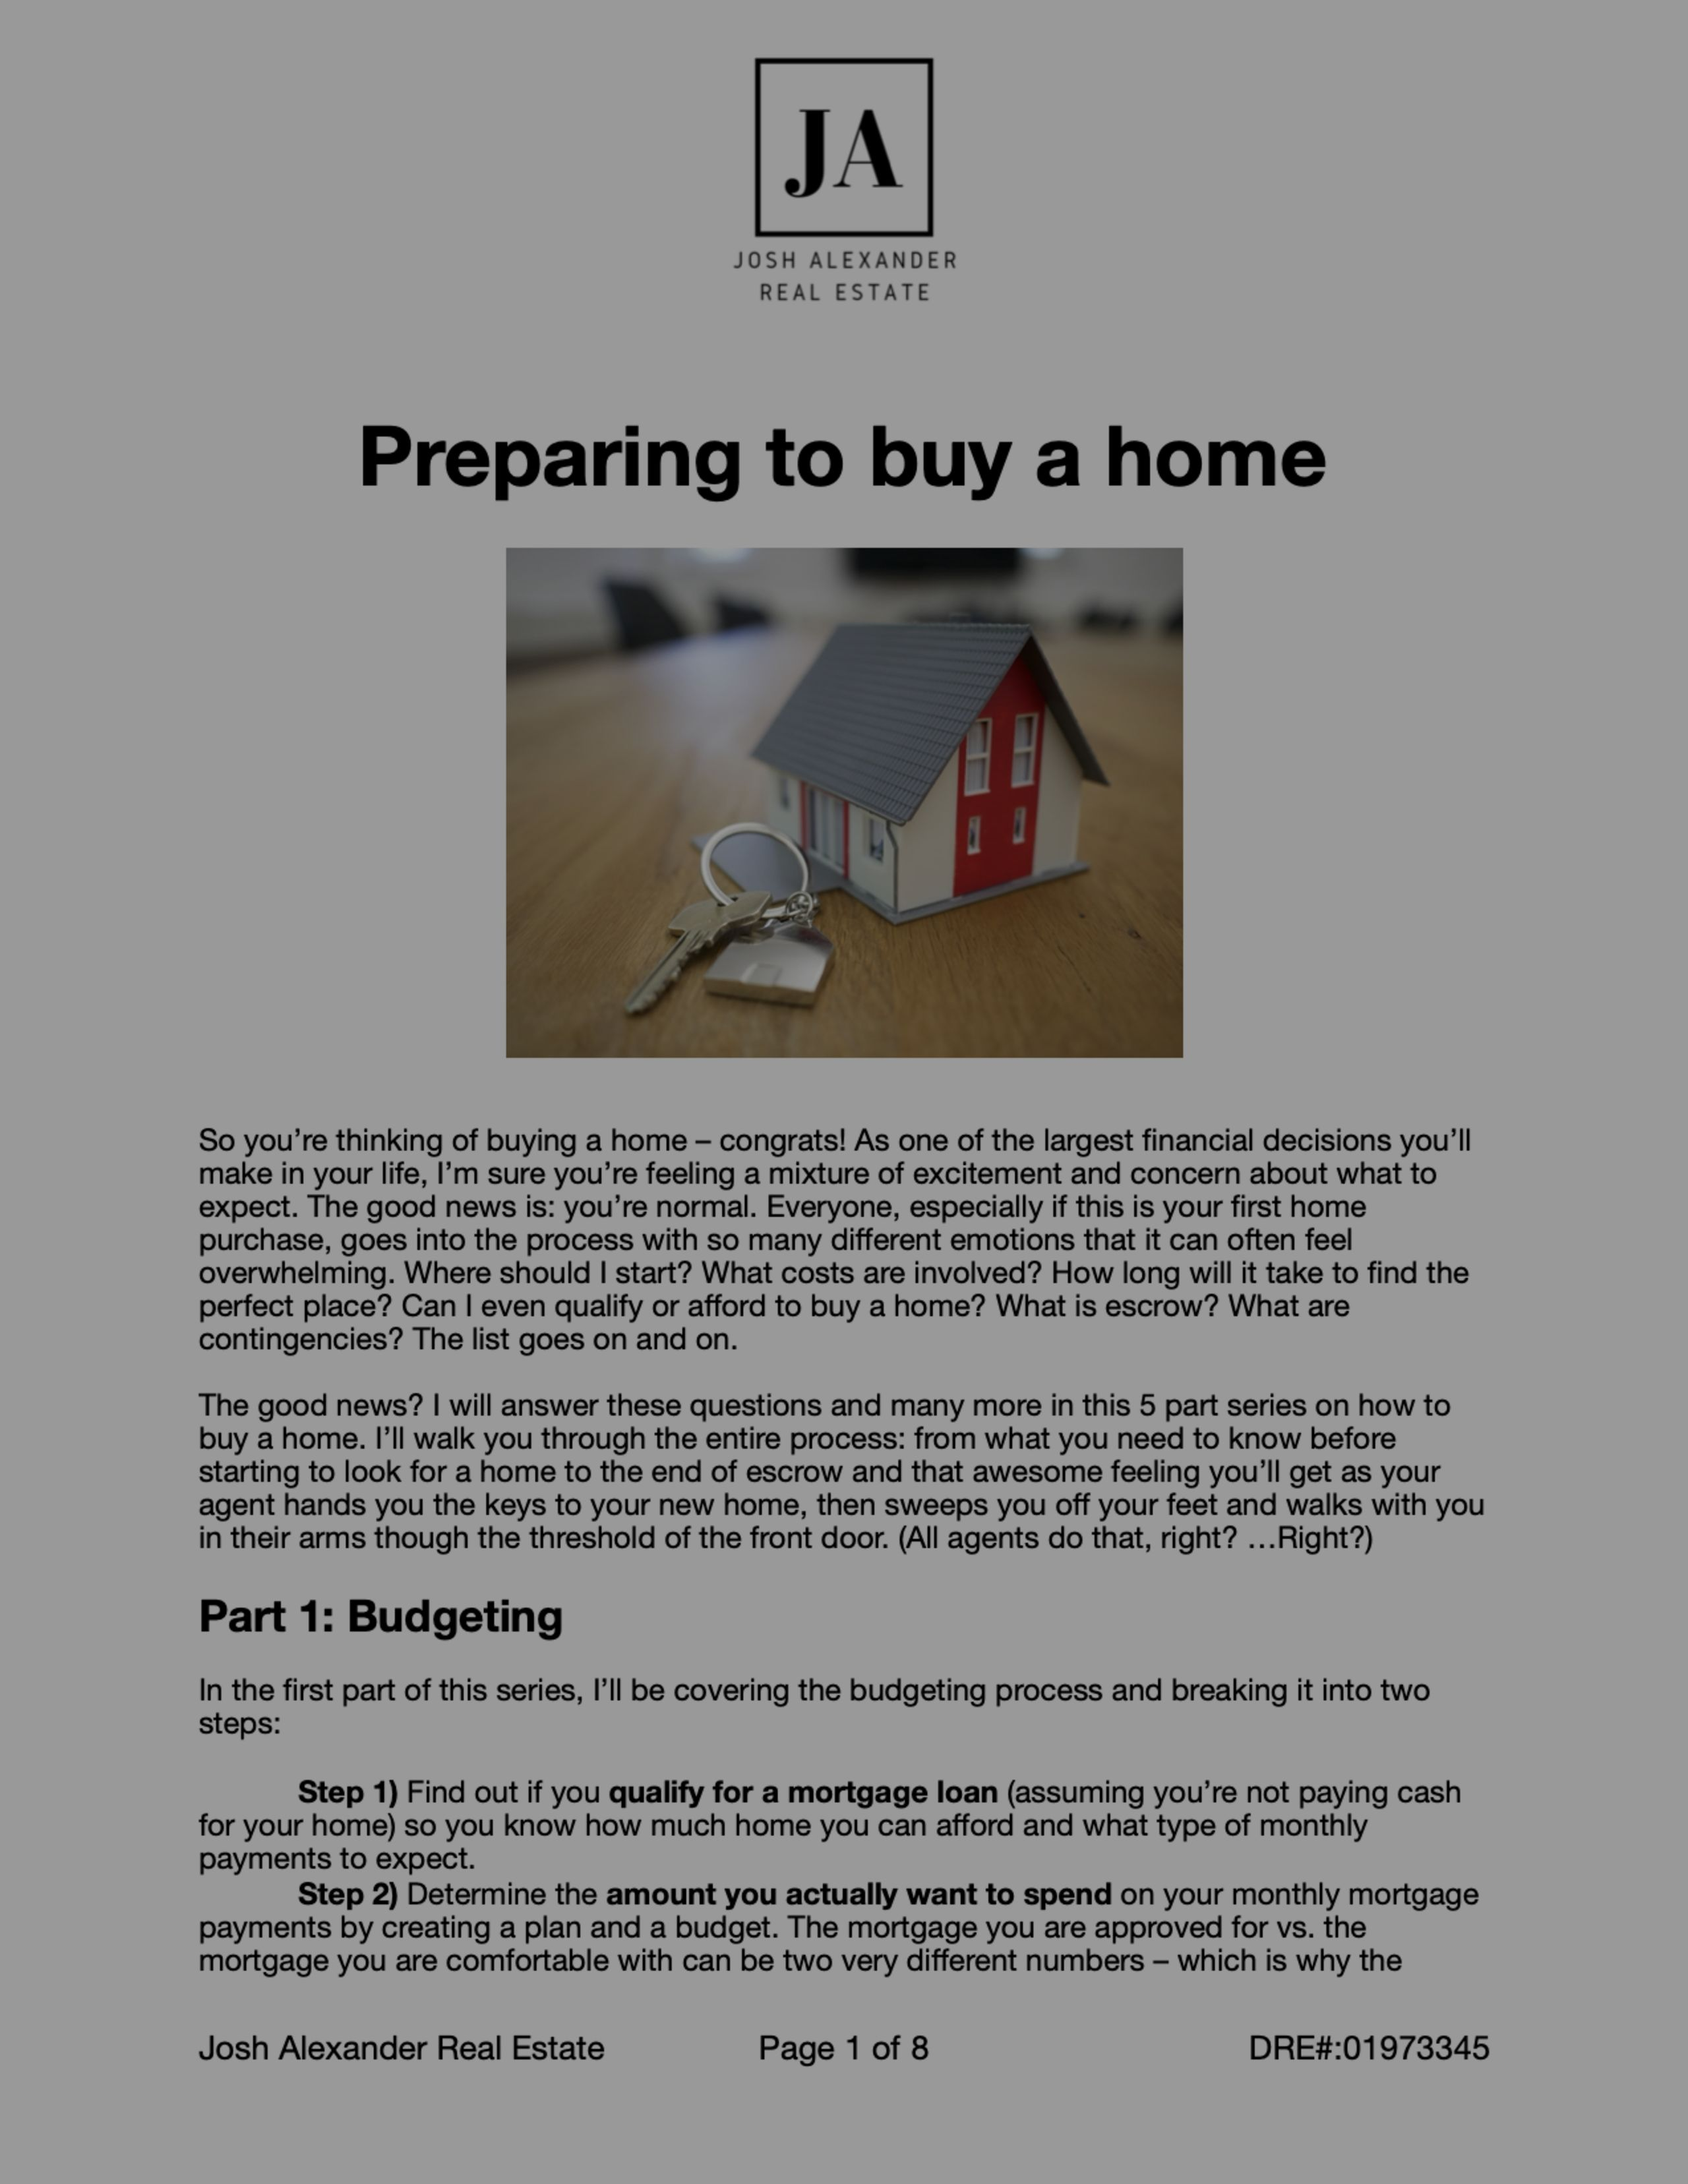 Preparing to Buy a Home – Budgeting